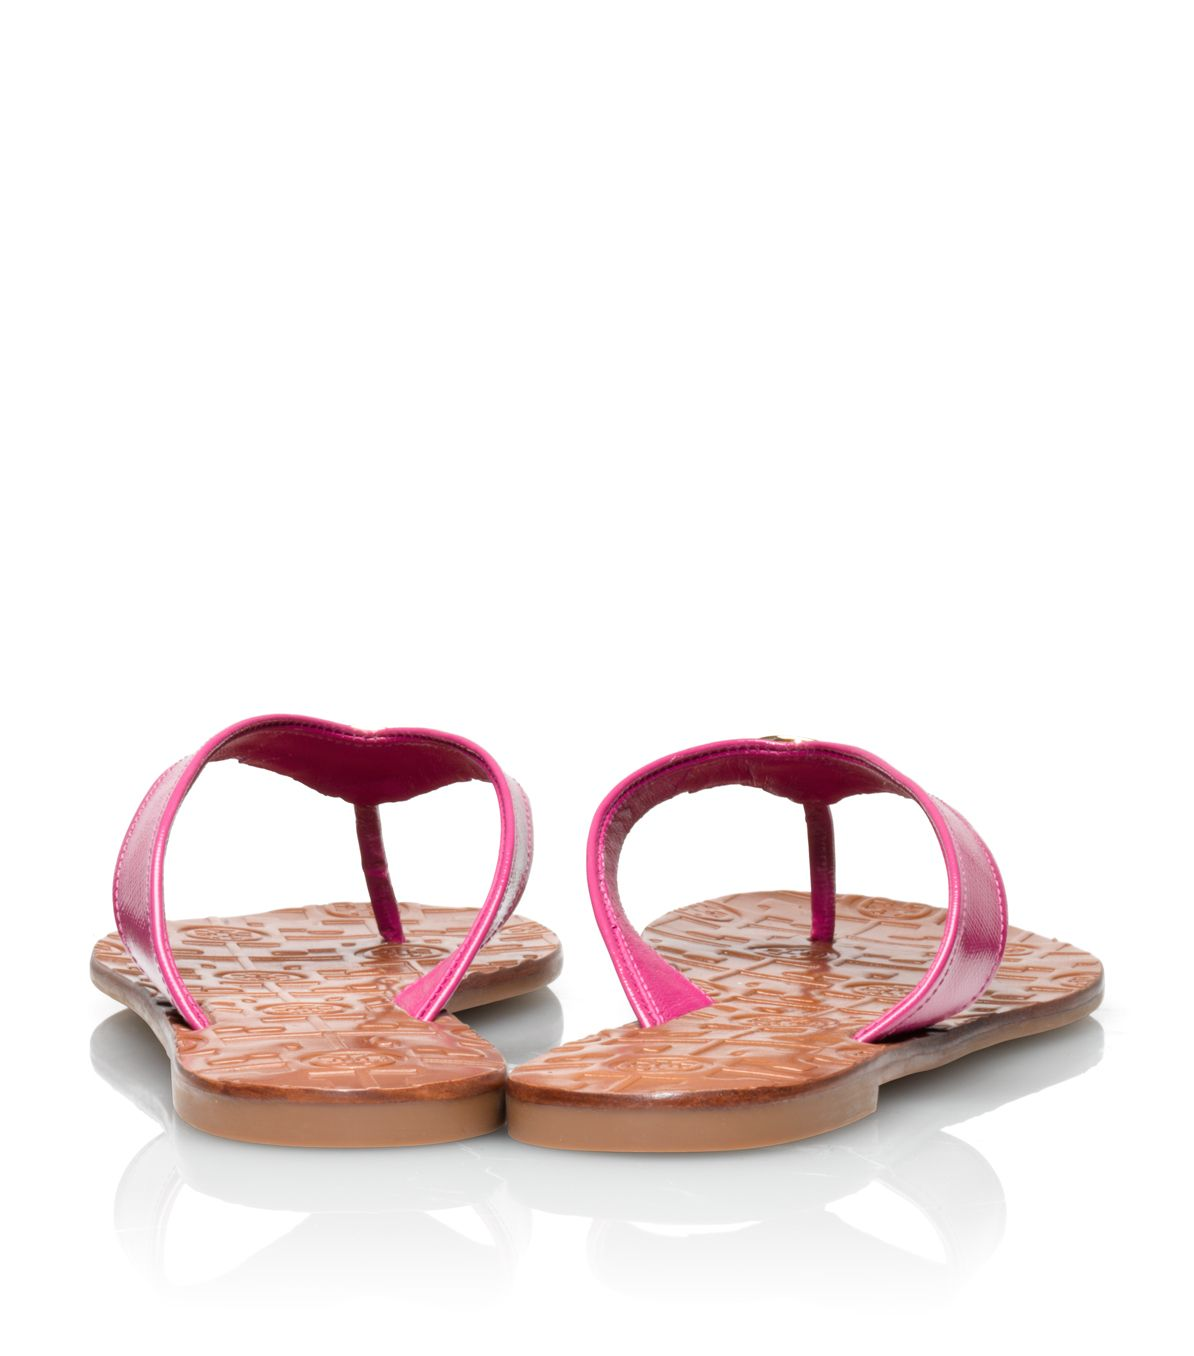 74ec354eecb ... ebay lyst tory burch patent leather thora sandal in pink 85dad fc452